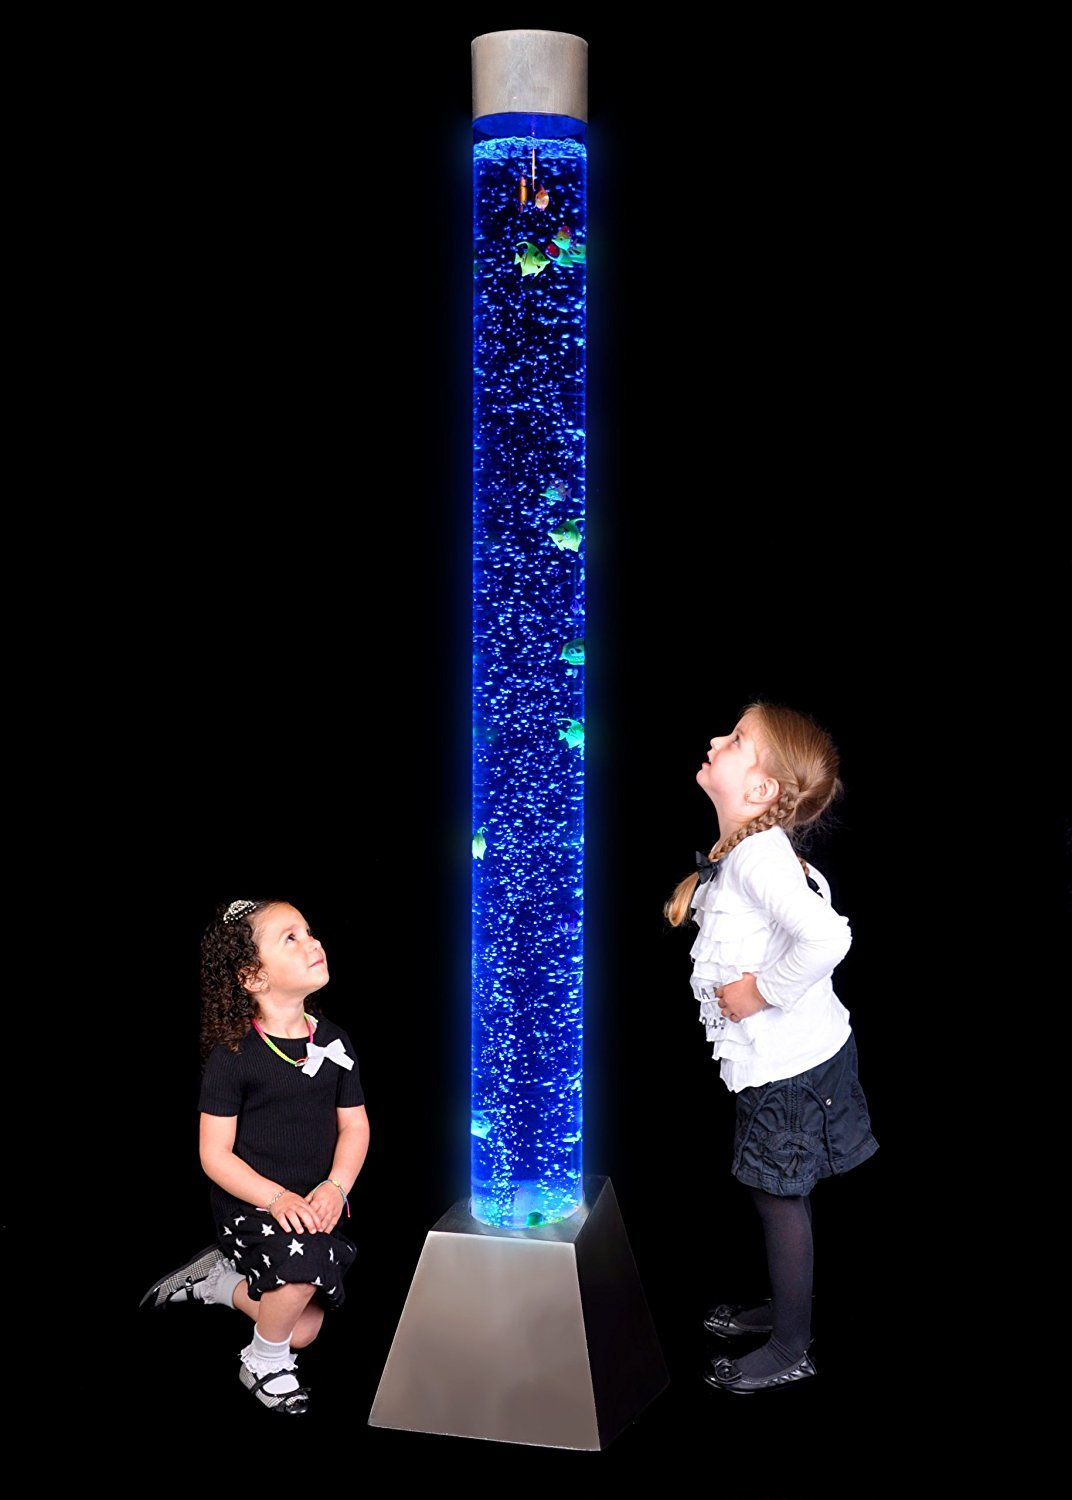 Sensory LED Bubble Tube - 6 Foot ''Tank'' With Fake Fish and Translucent Balls, With Remote Control - Large Floor Lamp with 8 Changing Lights Colors - Stimulating Home and Office Décor - by Playlearn